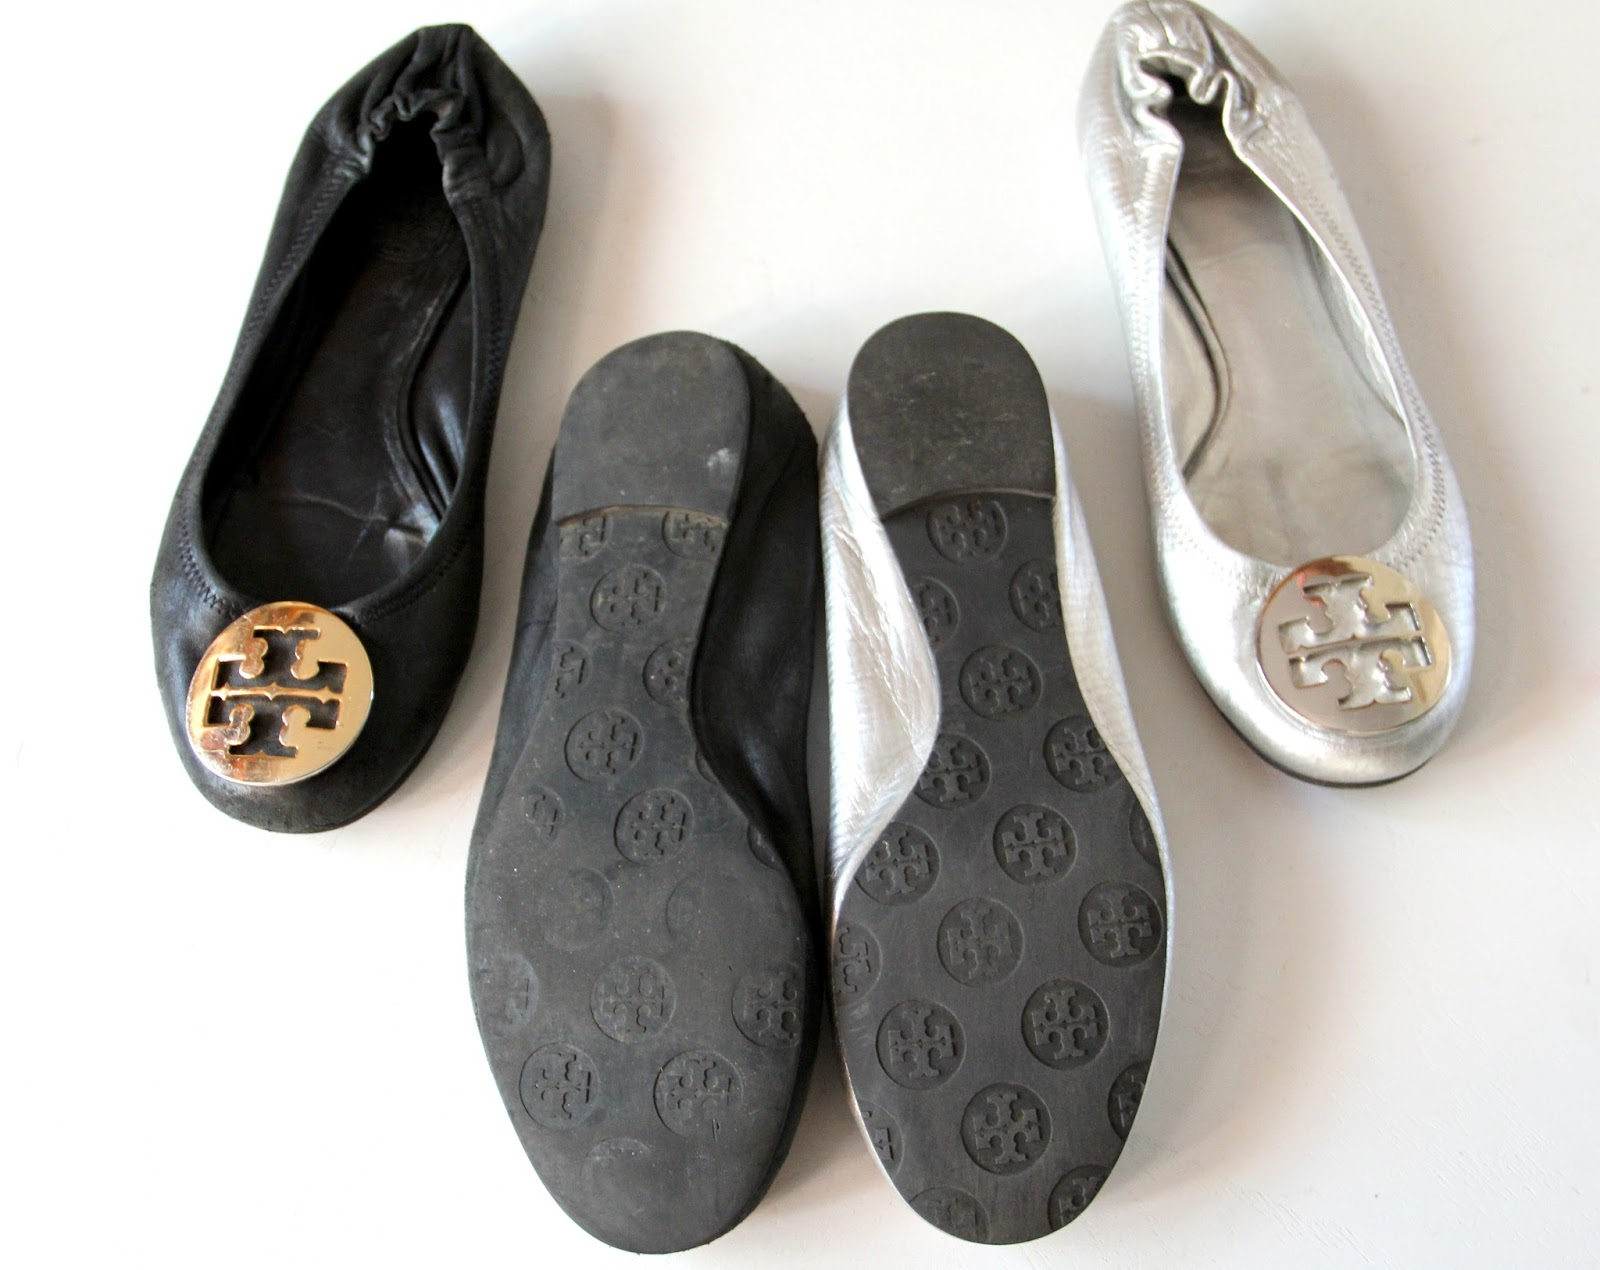 585b02fb4d5a Soles- Reva soles are rubber and can bend. They have circular logos  embossed into the rubber. The heel part does not have the circular logos on  it.